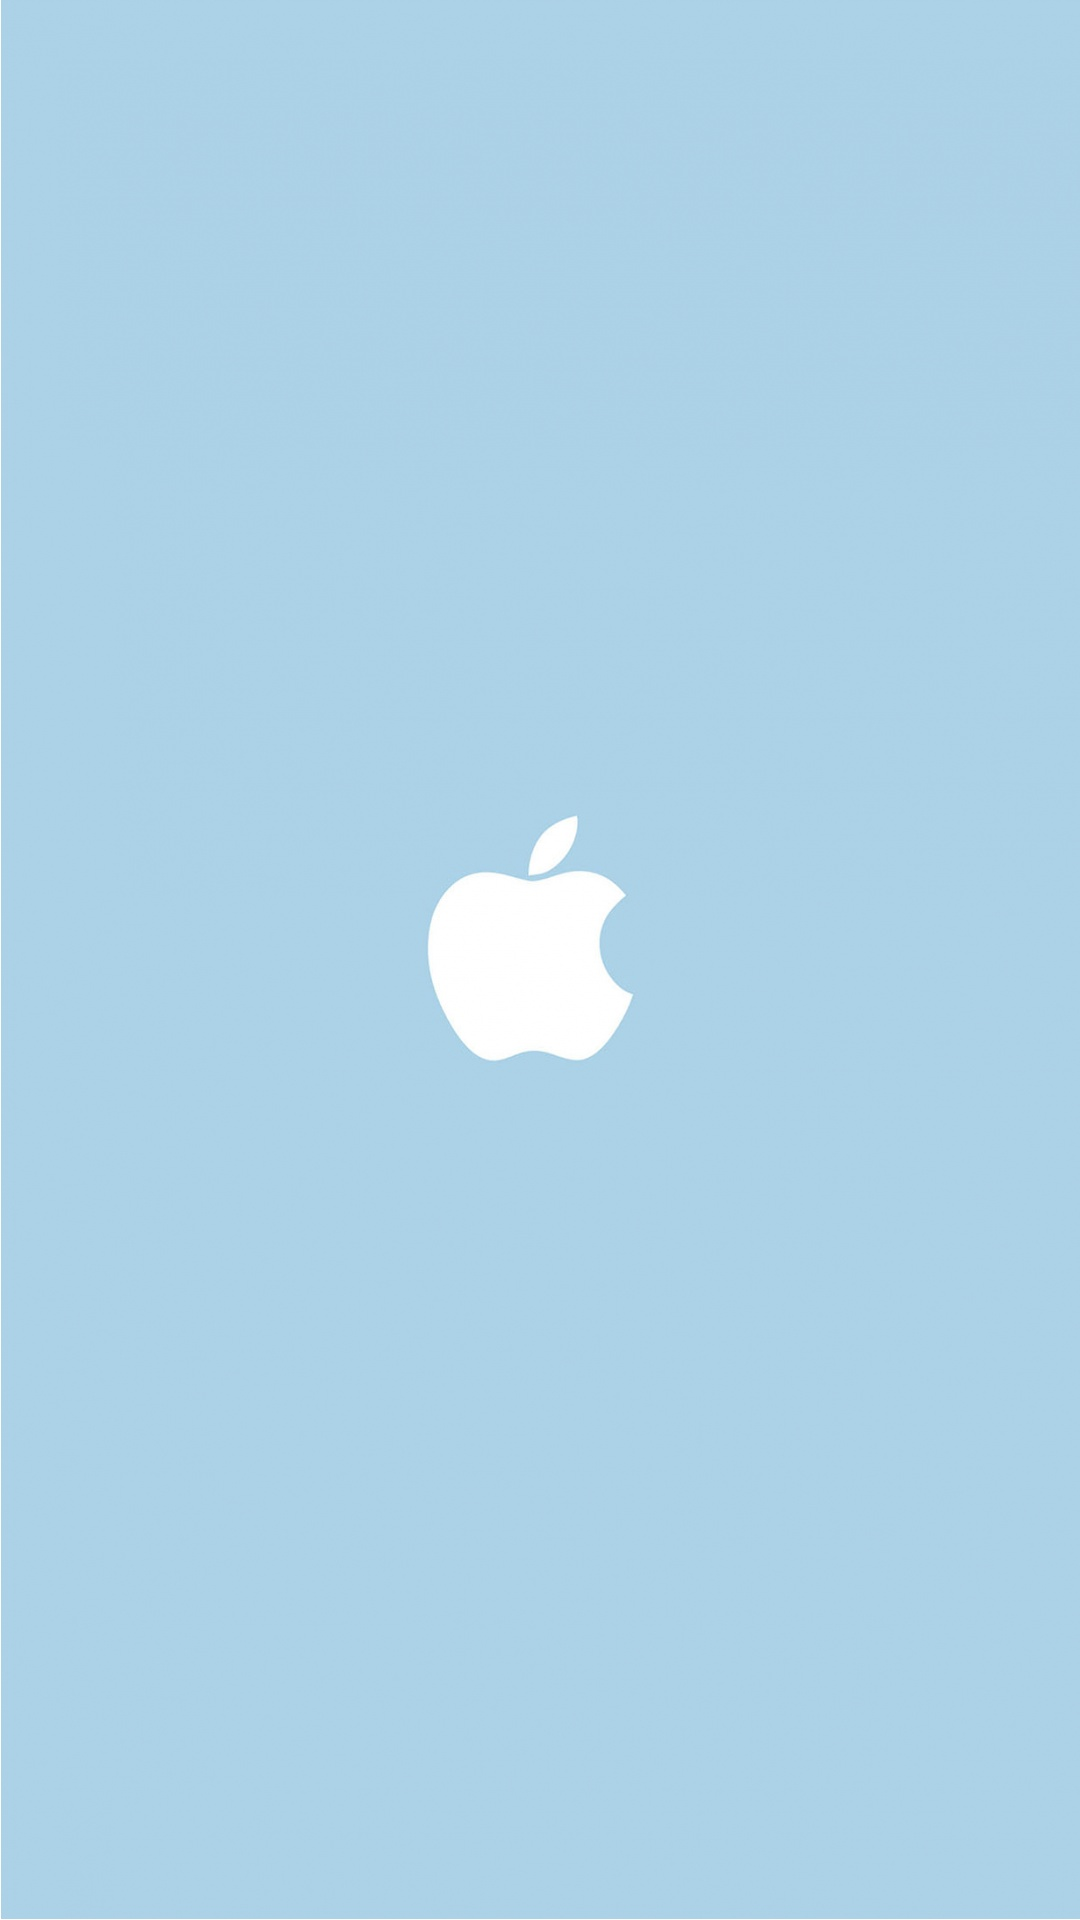 Best-of-Macintosh-Apple-Logo-Tap-image-for-more-mobile-for-iPhone-wallpaper-wp360180